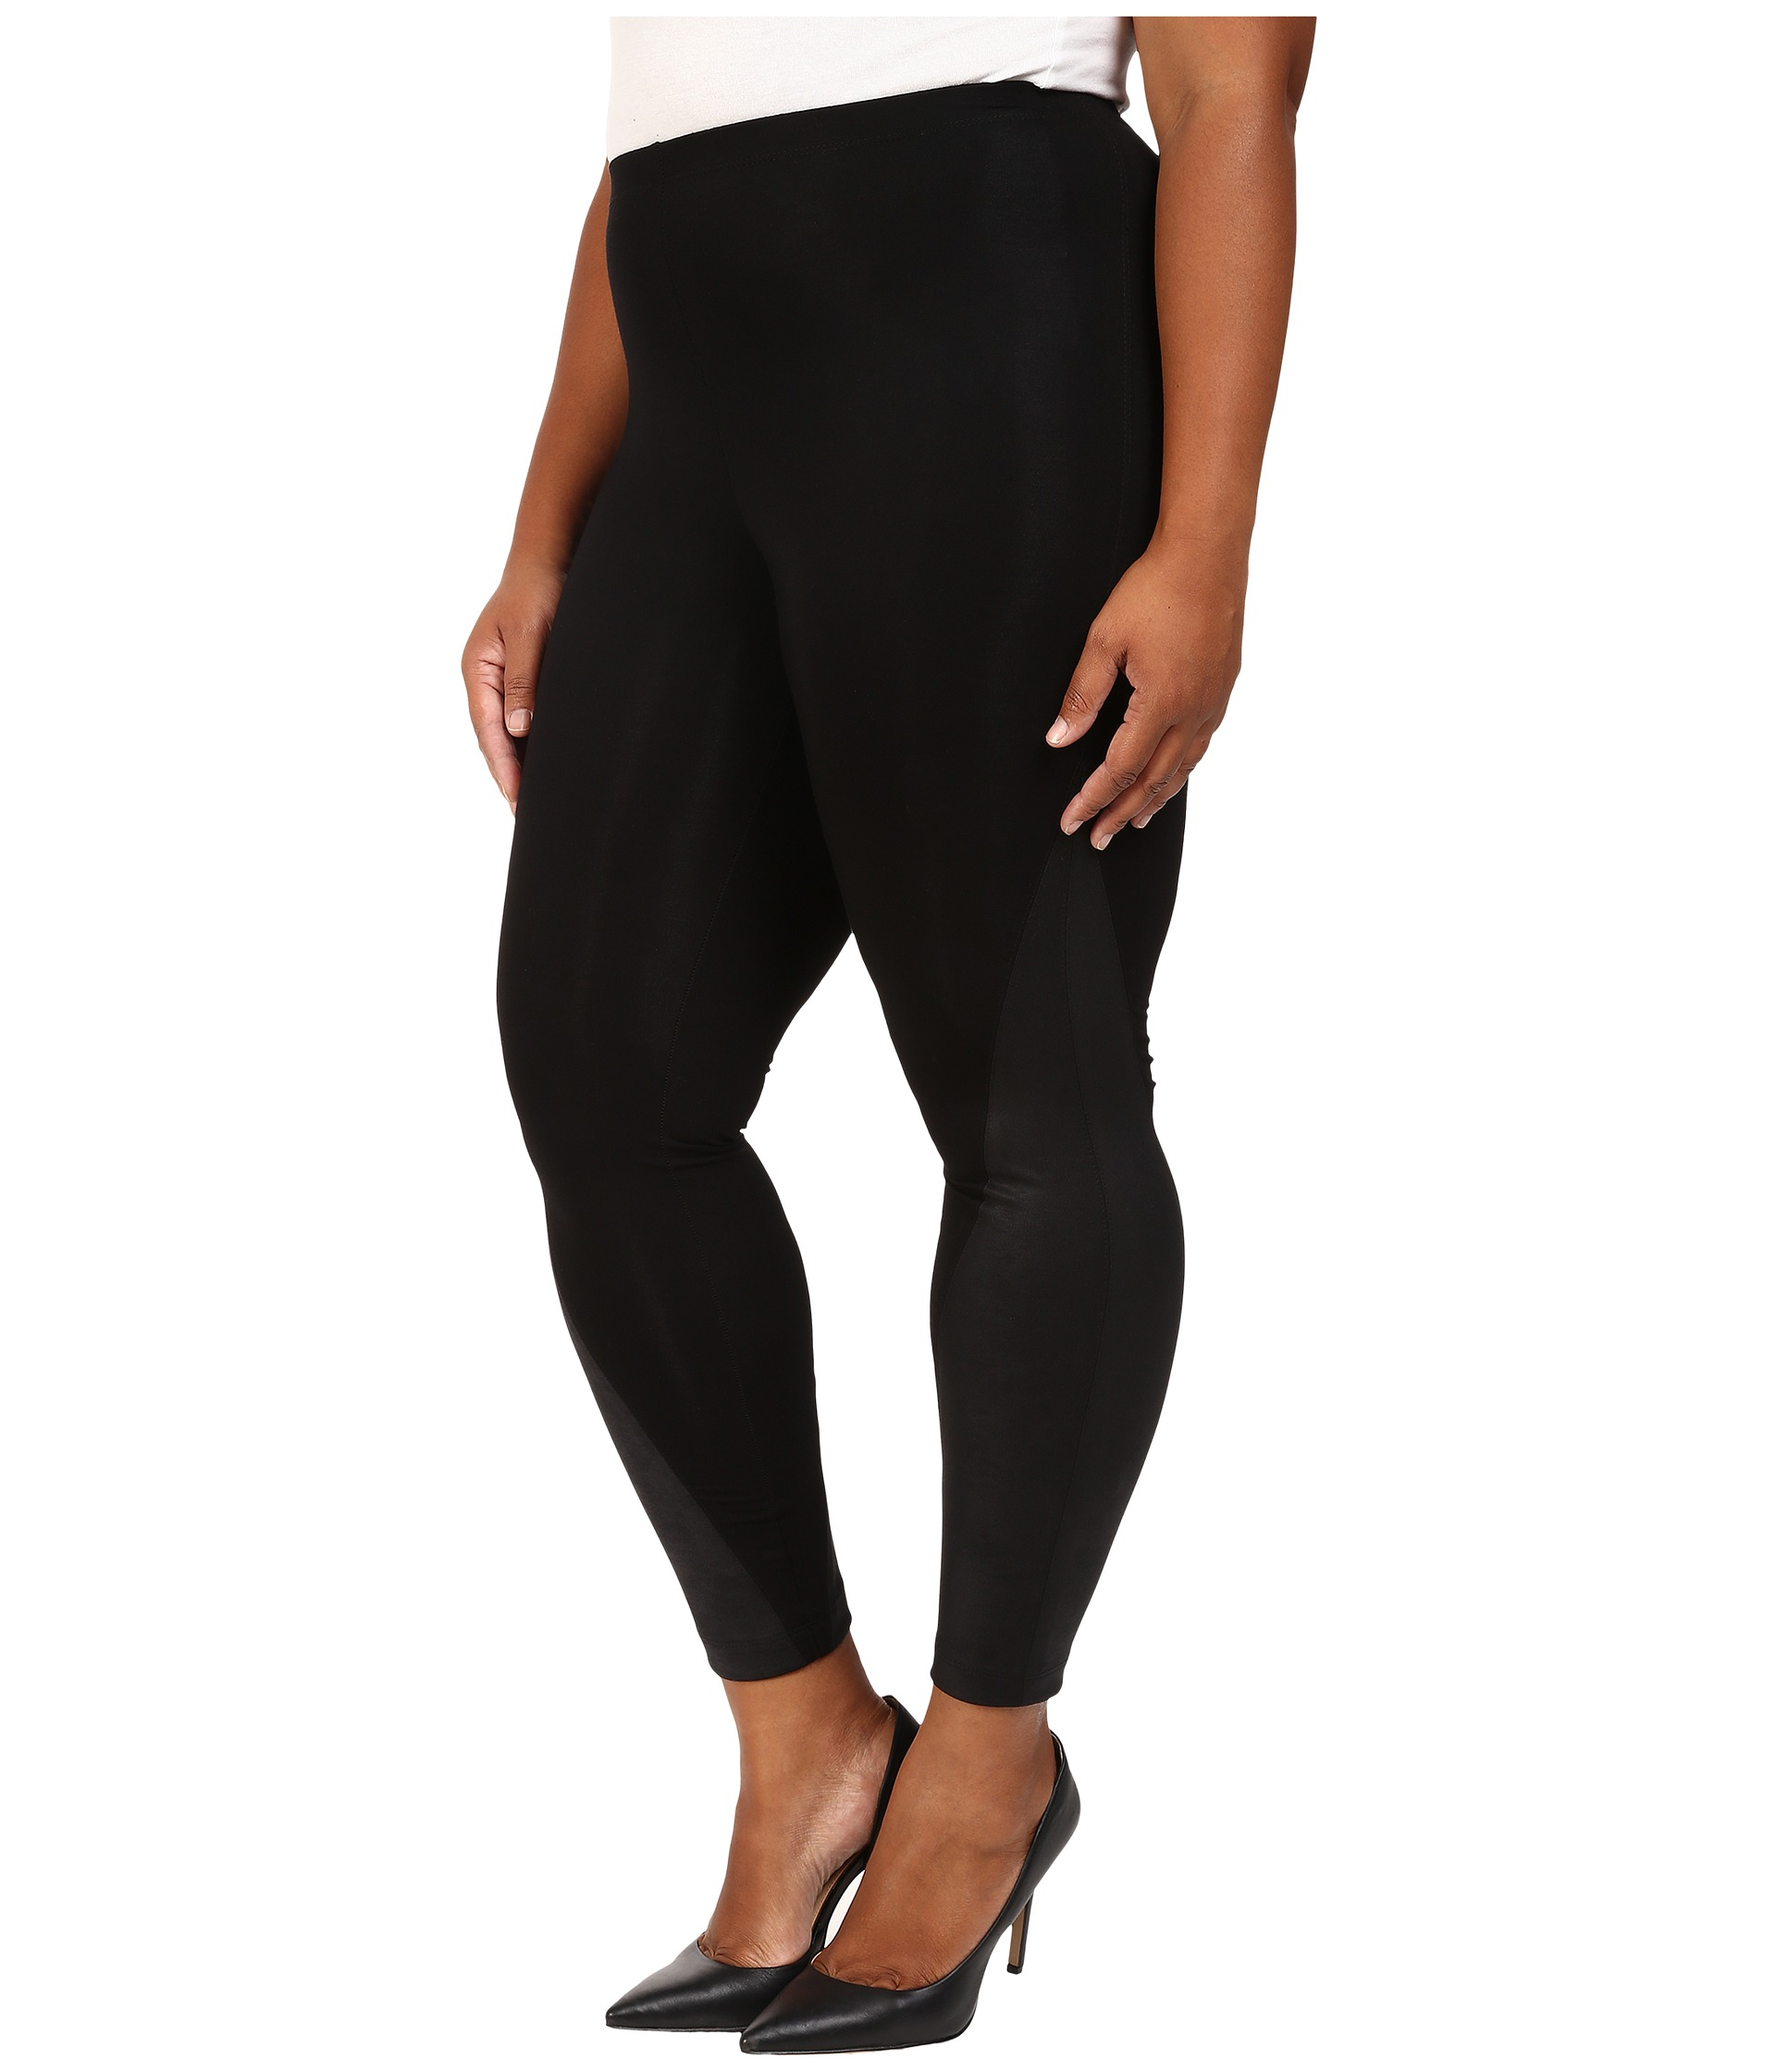 dknyc plus size legging w faux leather panel items found. Sort By. items. View. Sort By. Filter. Like. NYDJ Plus Size. Plus Size Alina Legging Jeans in Faux Leather Coating in Black Grey Leather Coating Plus Size Alina Legging Jeans in Faux Leather Coating in Mahogany Brown Leather Coating. $ MSRP: $ Like.